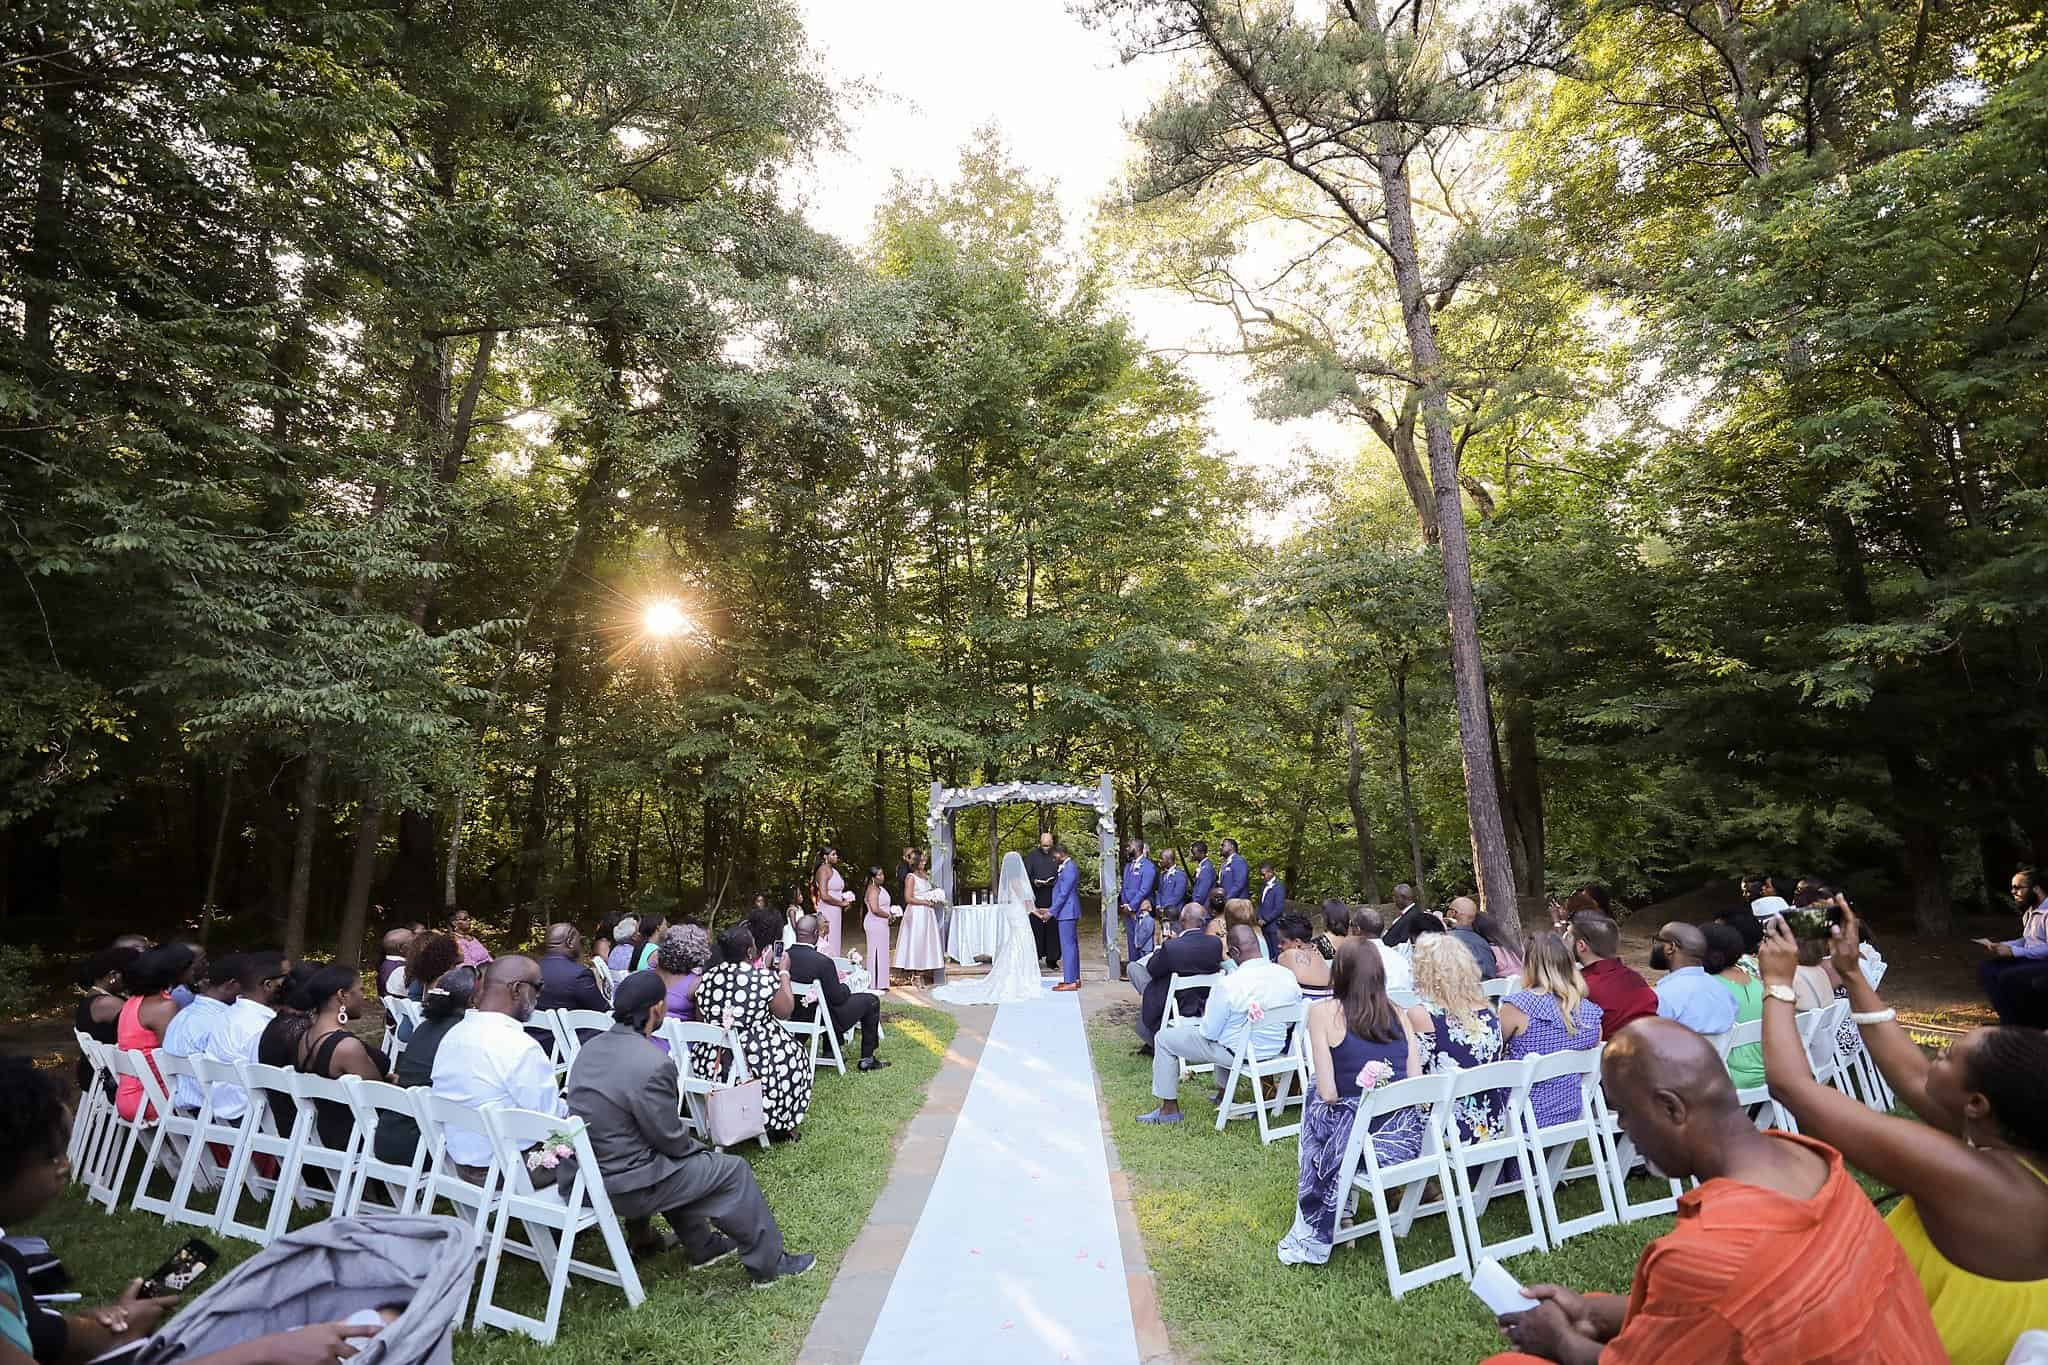 Wedding Ceremony at a river outdoors with bride and groom at altar in front of wedding guests seated in white folding chairs